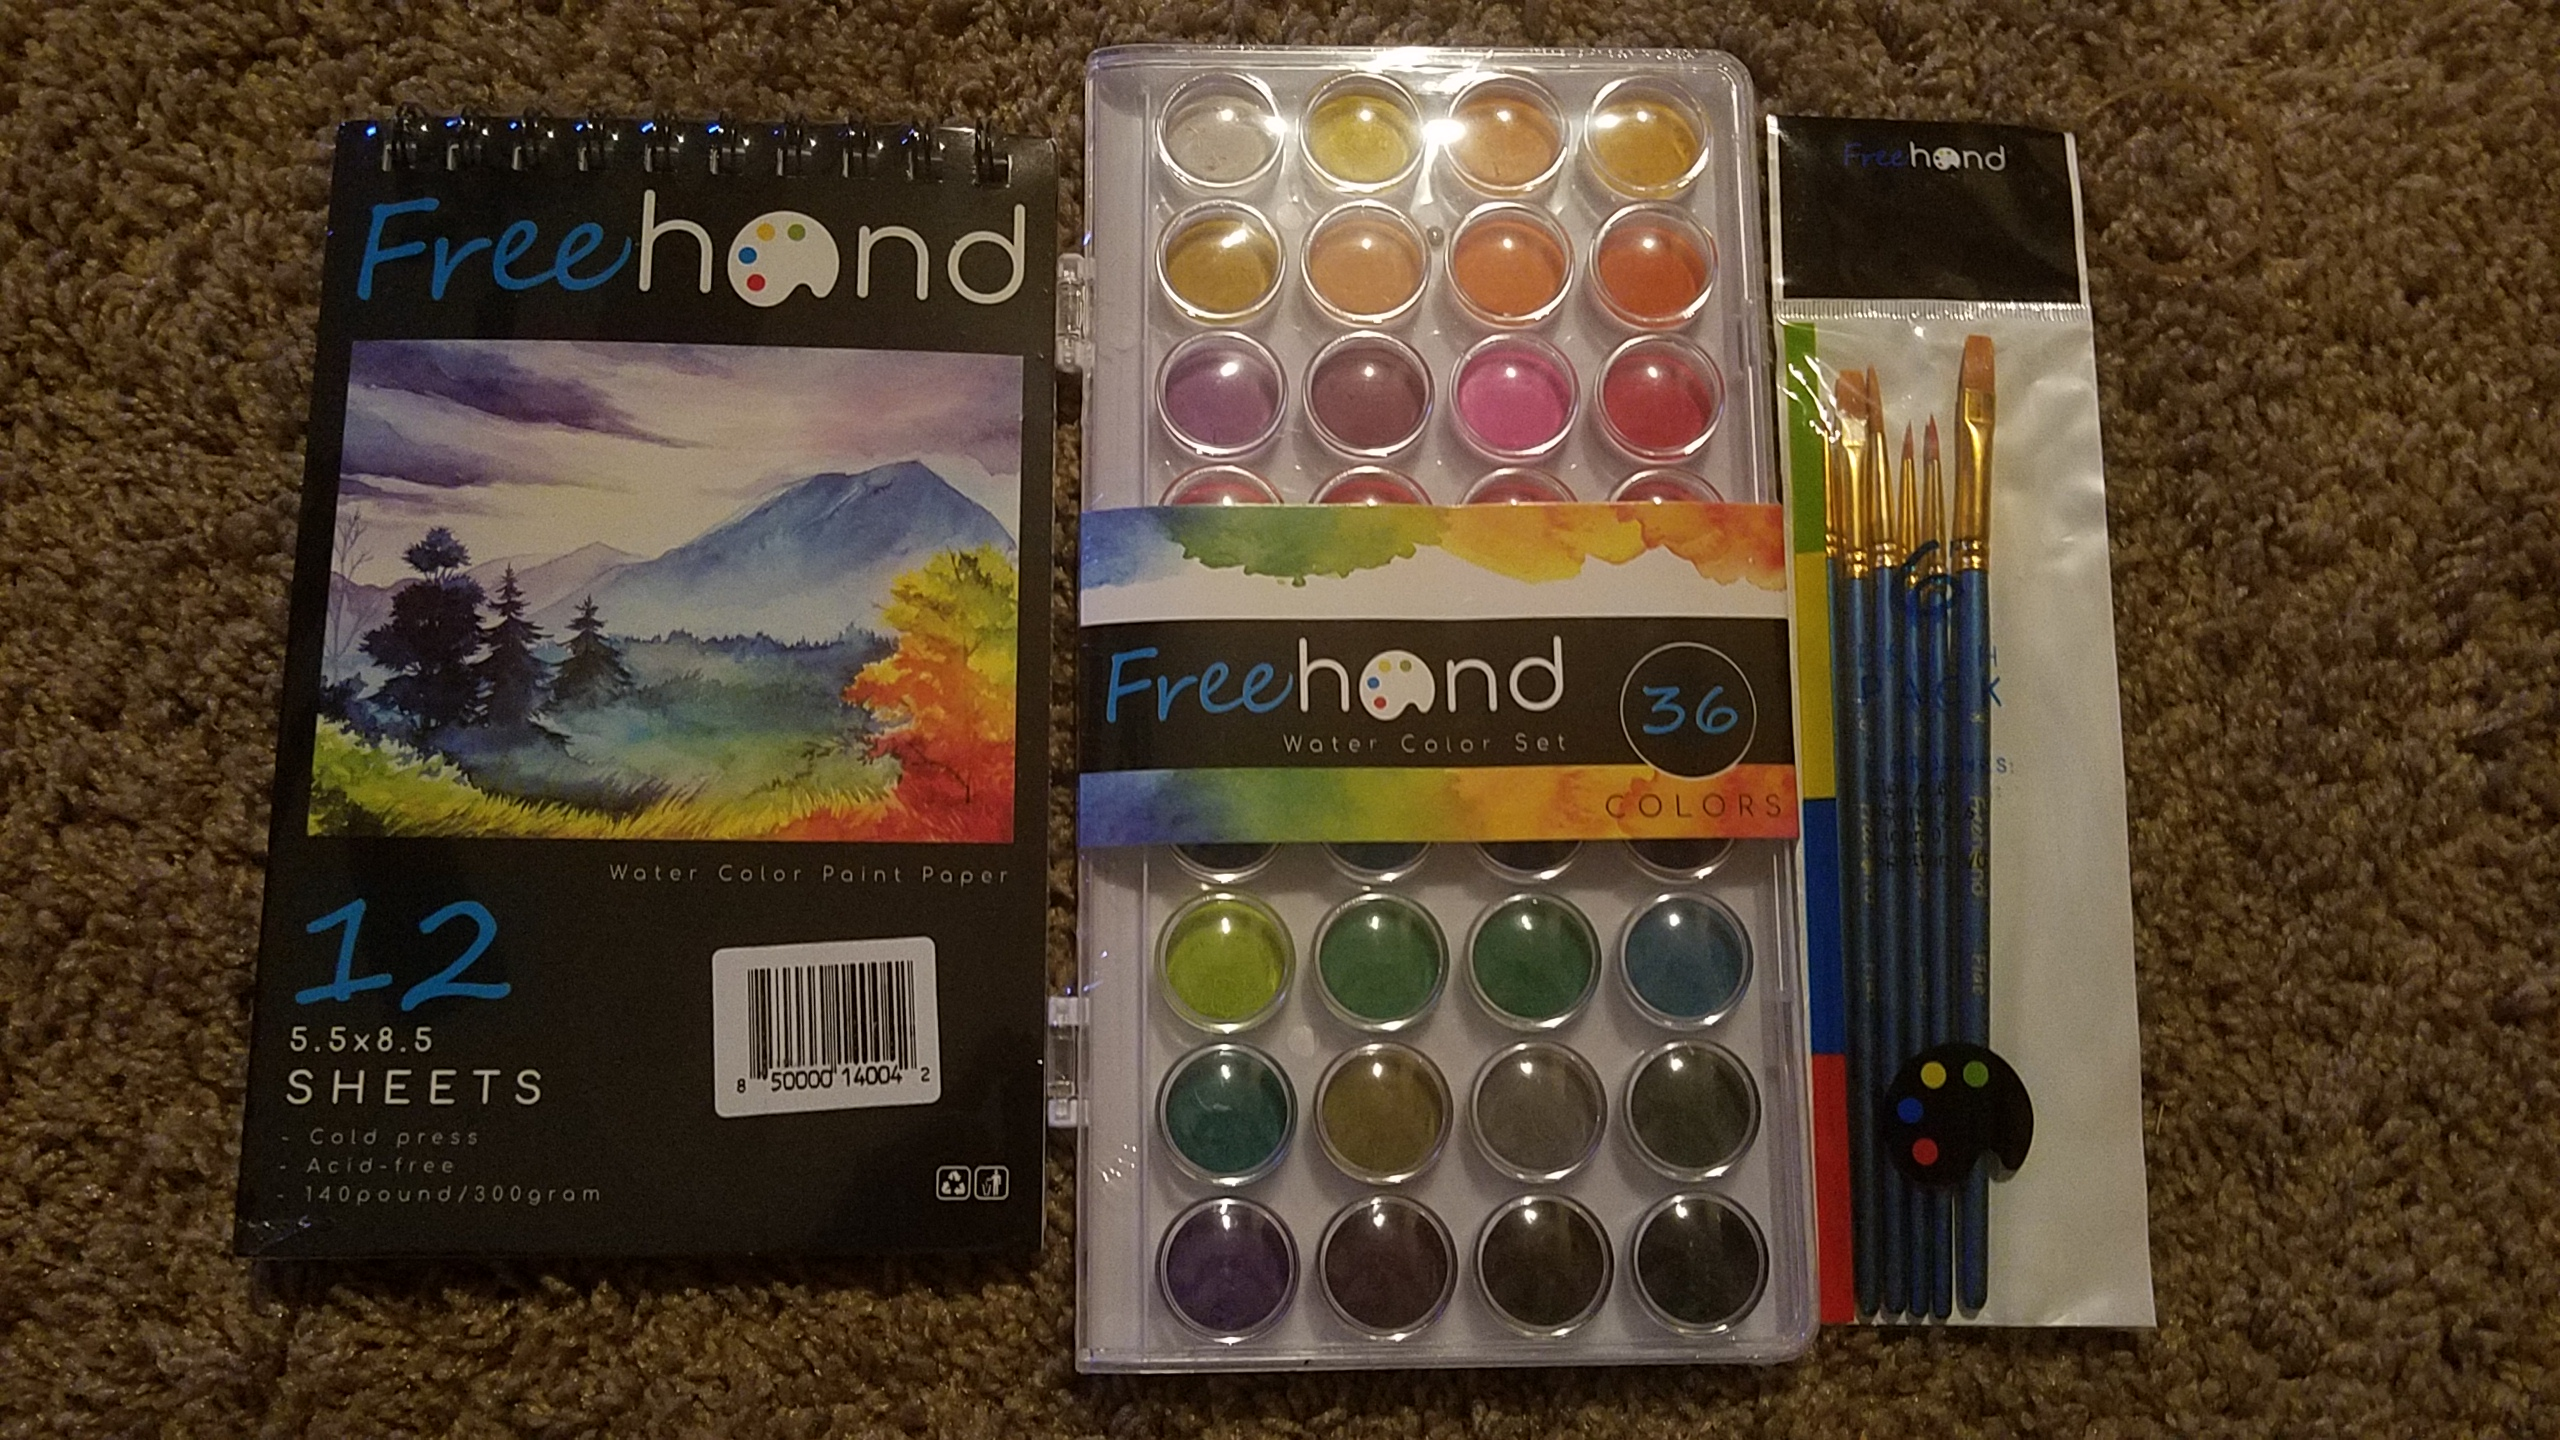 Excellent choice of water coloring set!